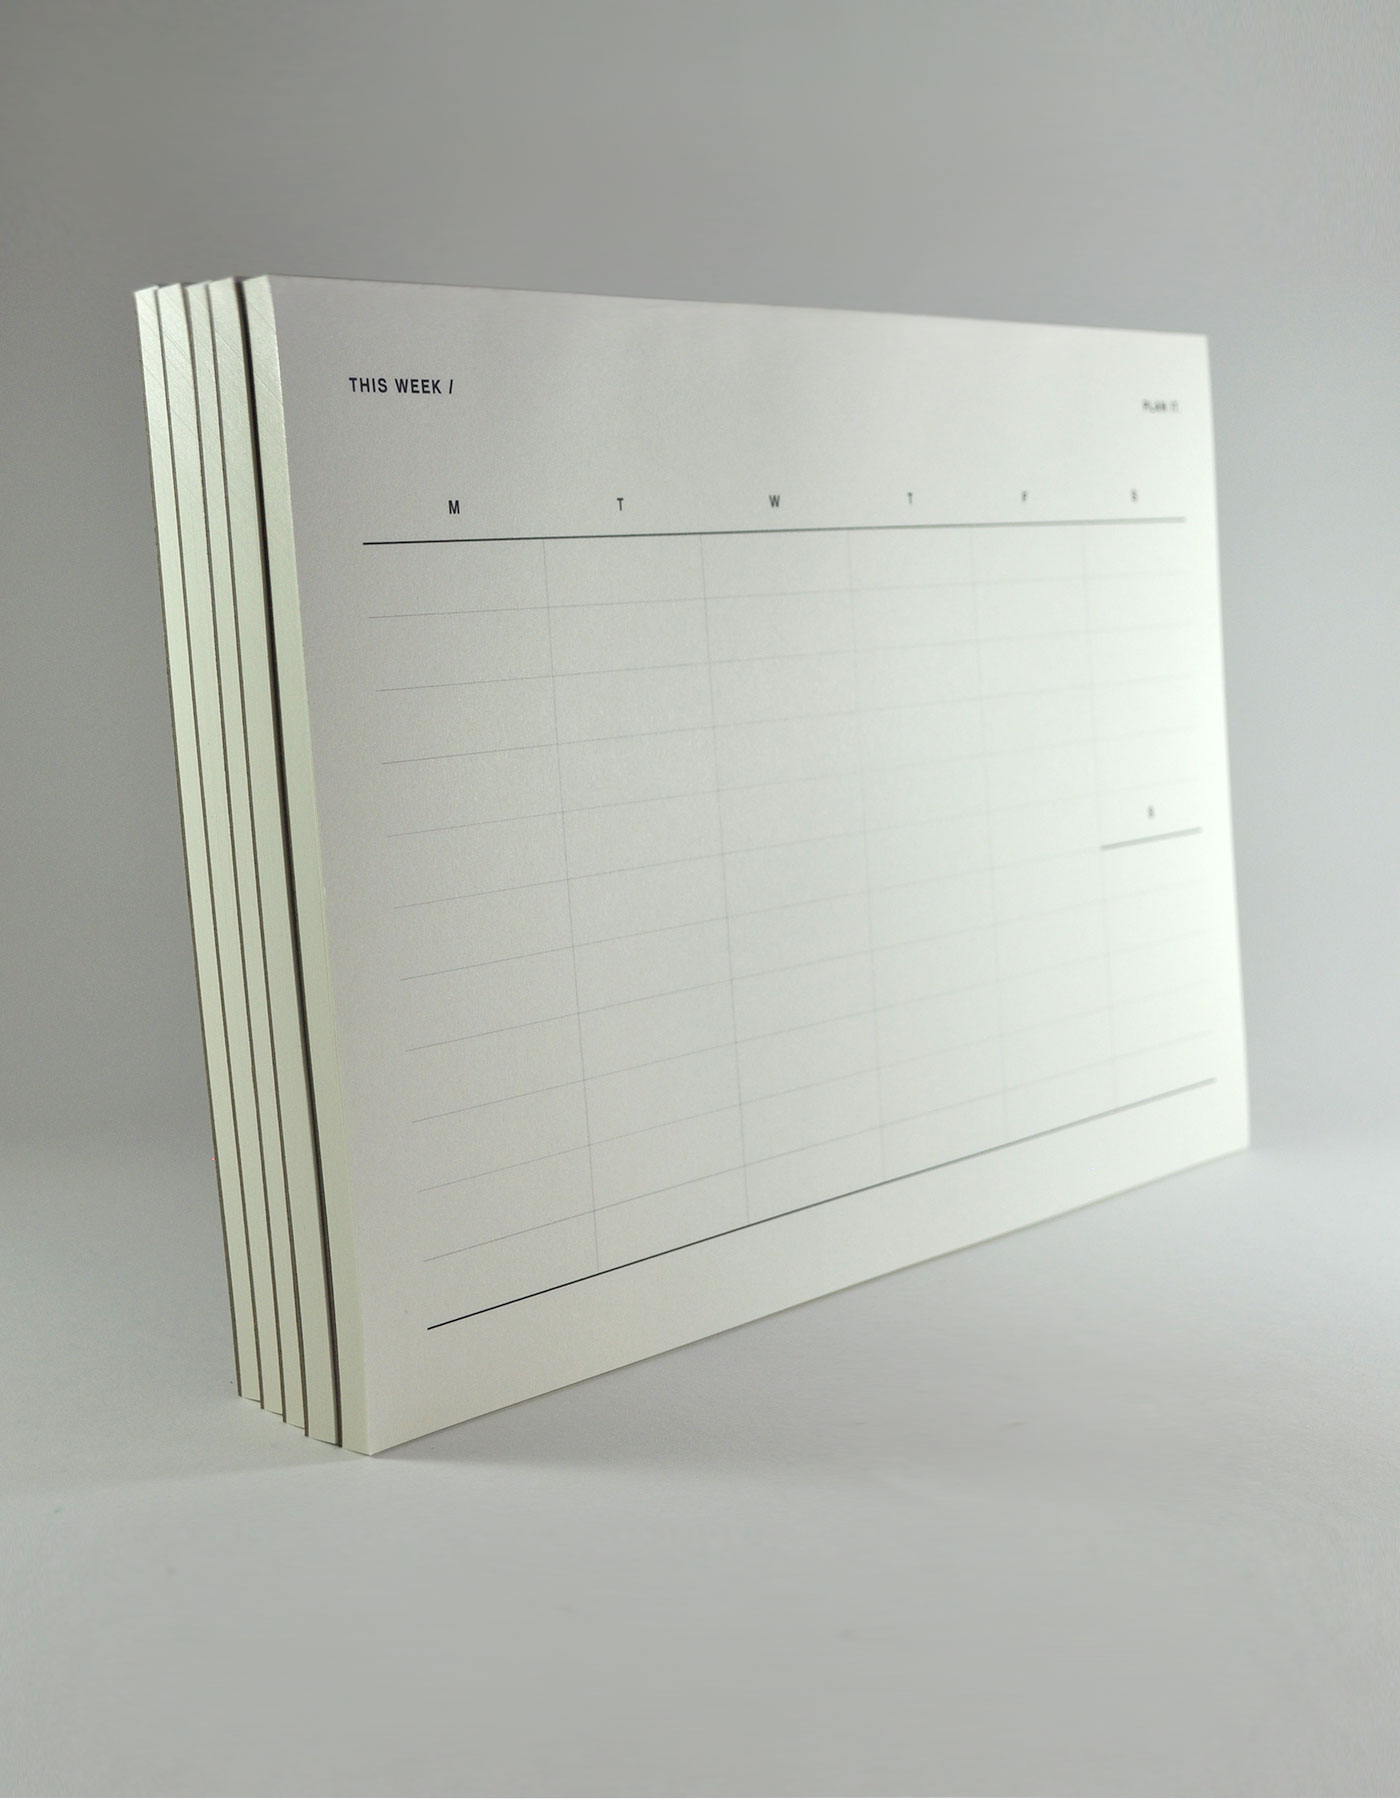 A4 Weekly Planner Notepad 52 pages of Munken Pure smooth paper • Unsheep